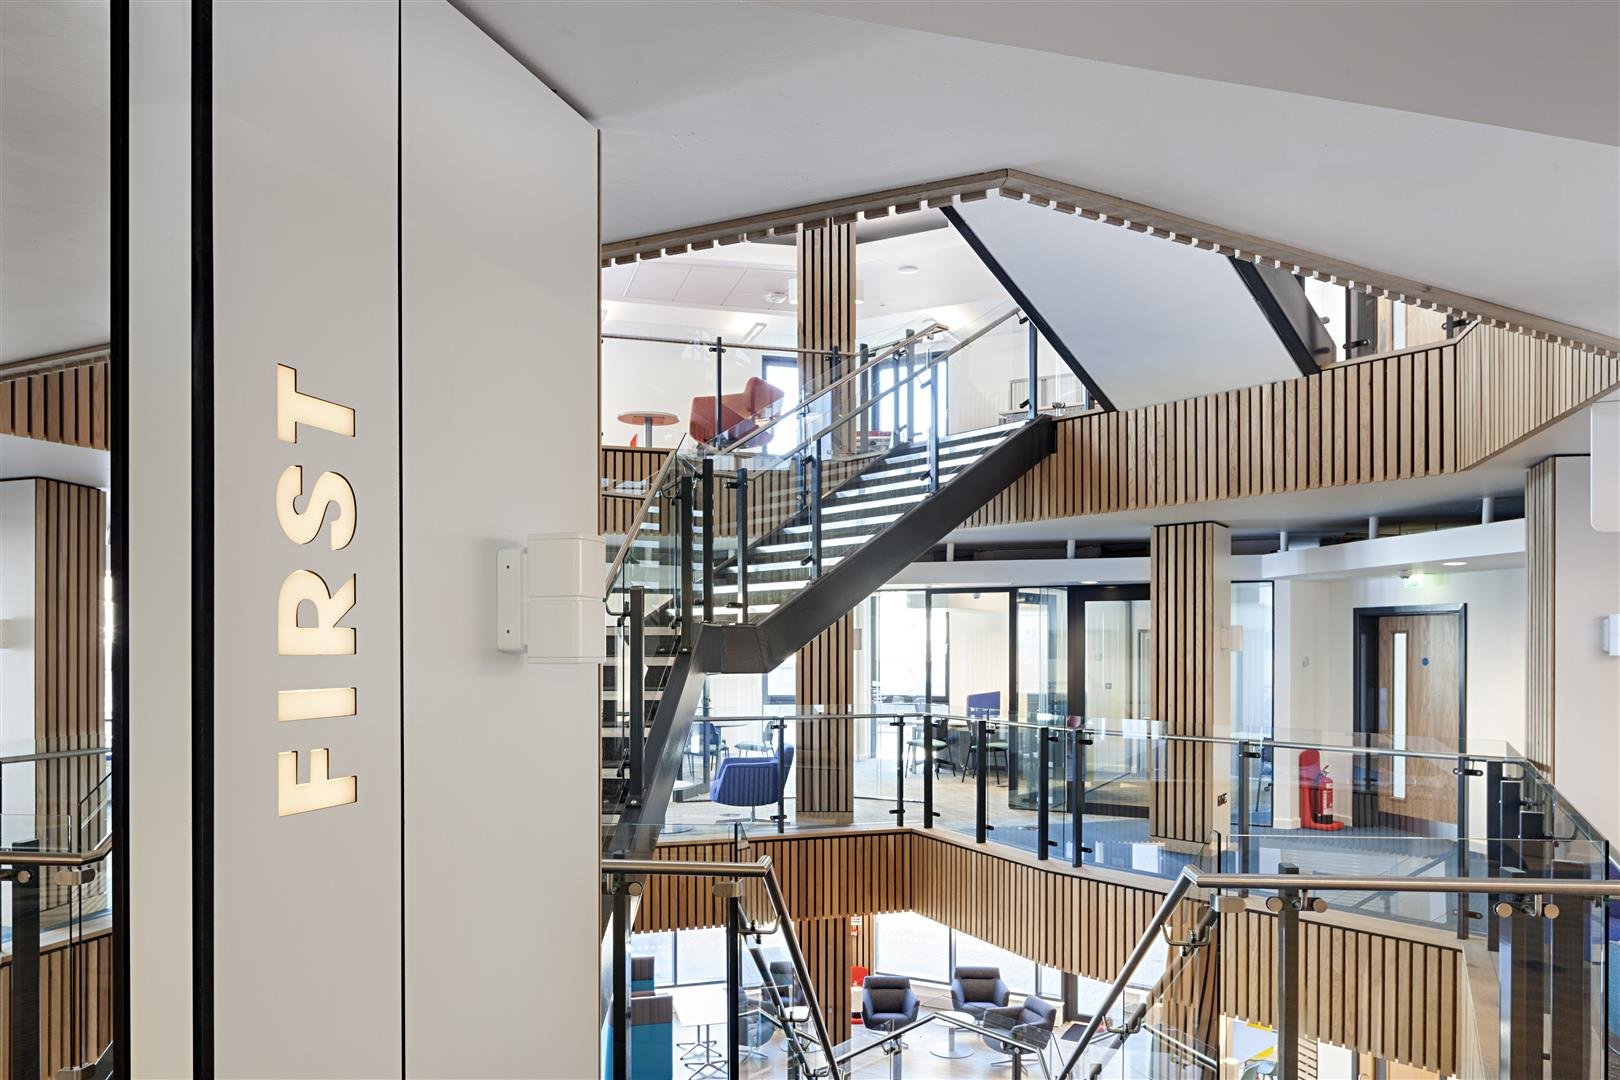 Our Team Was Approached In 2013 To Build This Six Storey Facility That Provides Great New Space Study Socialise And Get Involved With The Students